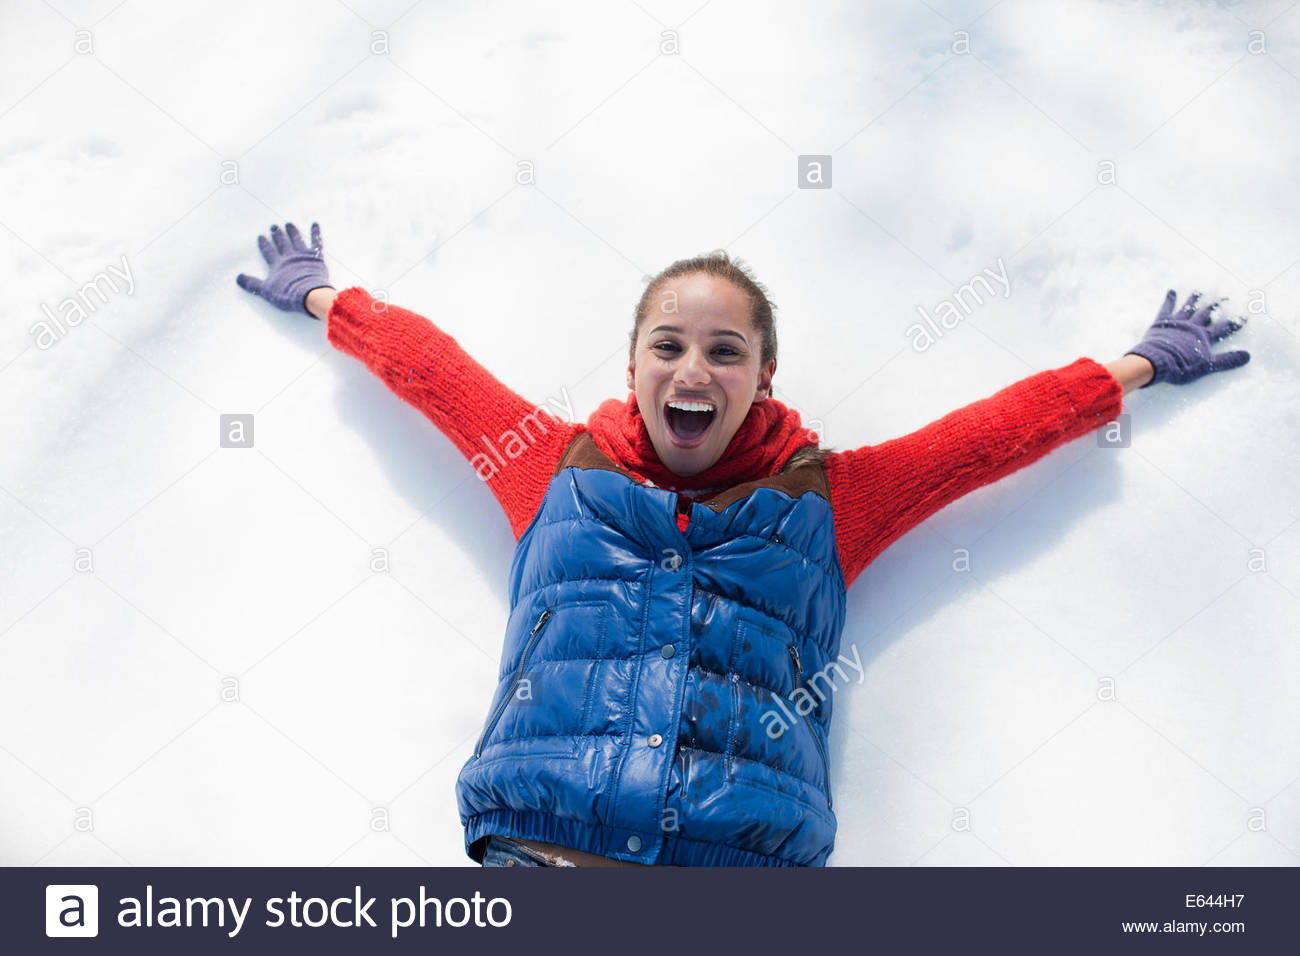 Smiling woman making snow angels Photo Stock